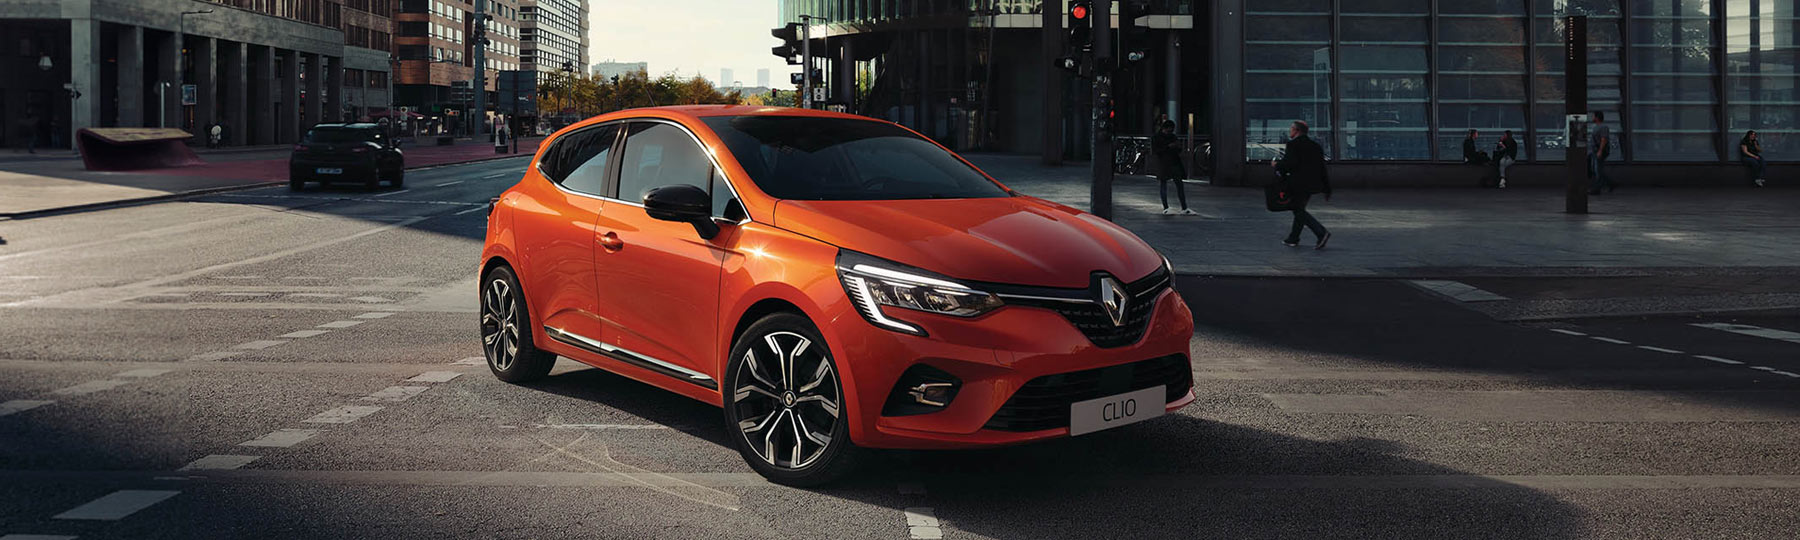 renault Clio Business Offer